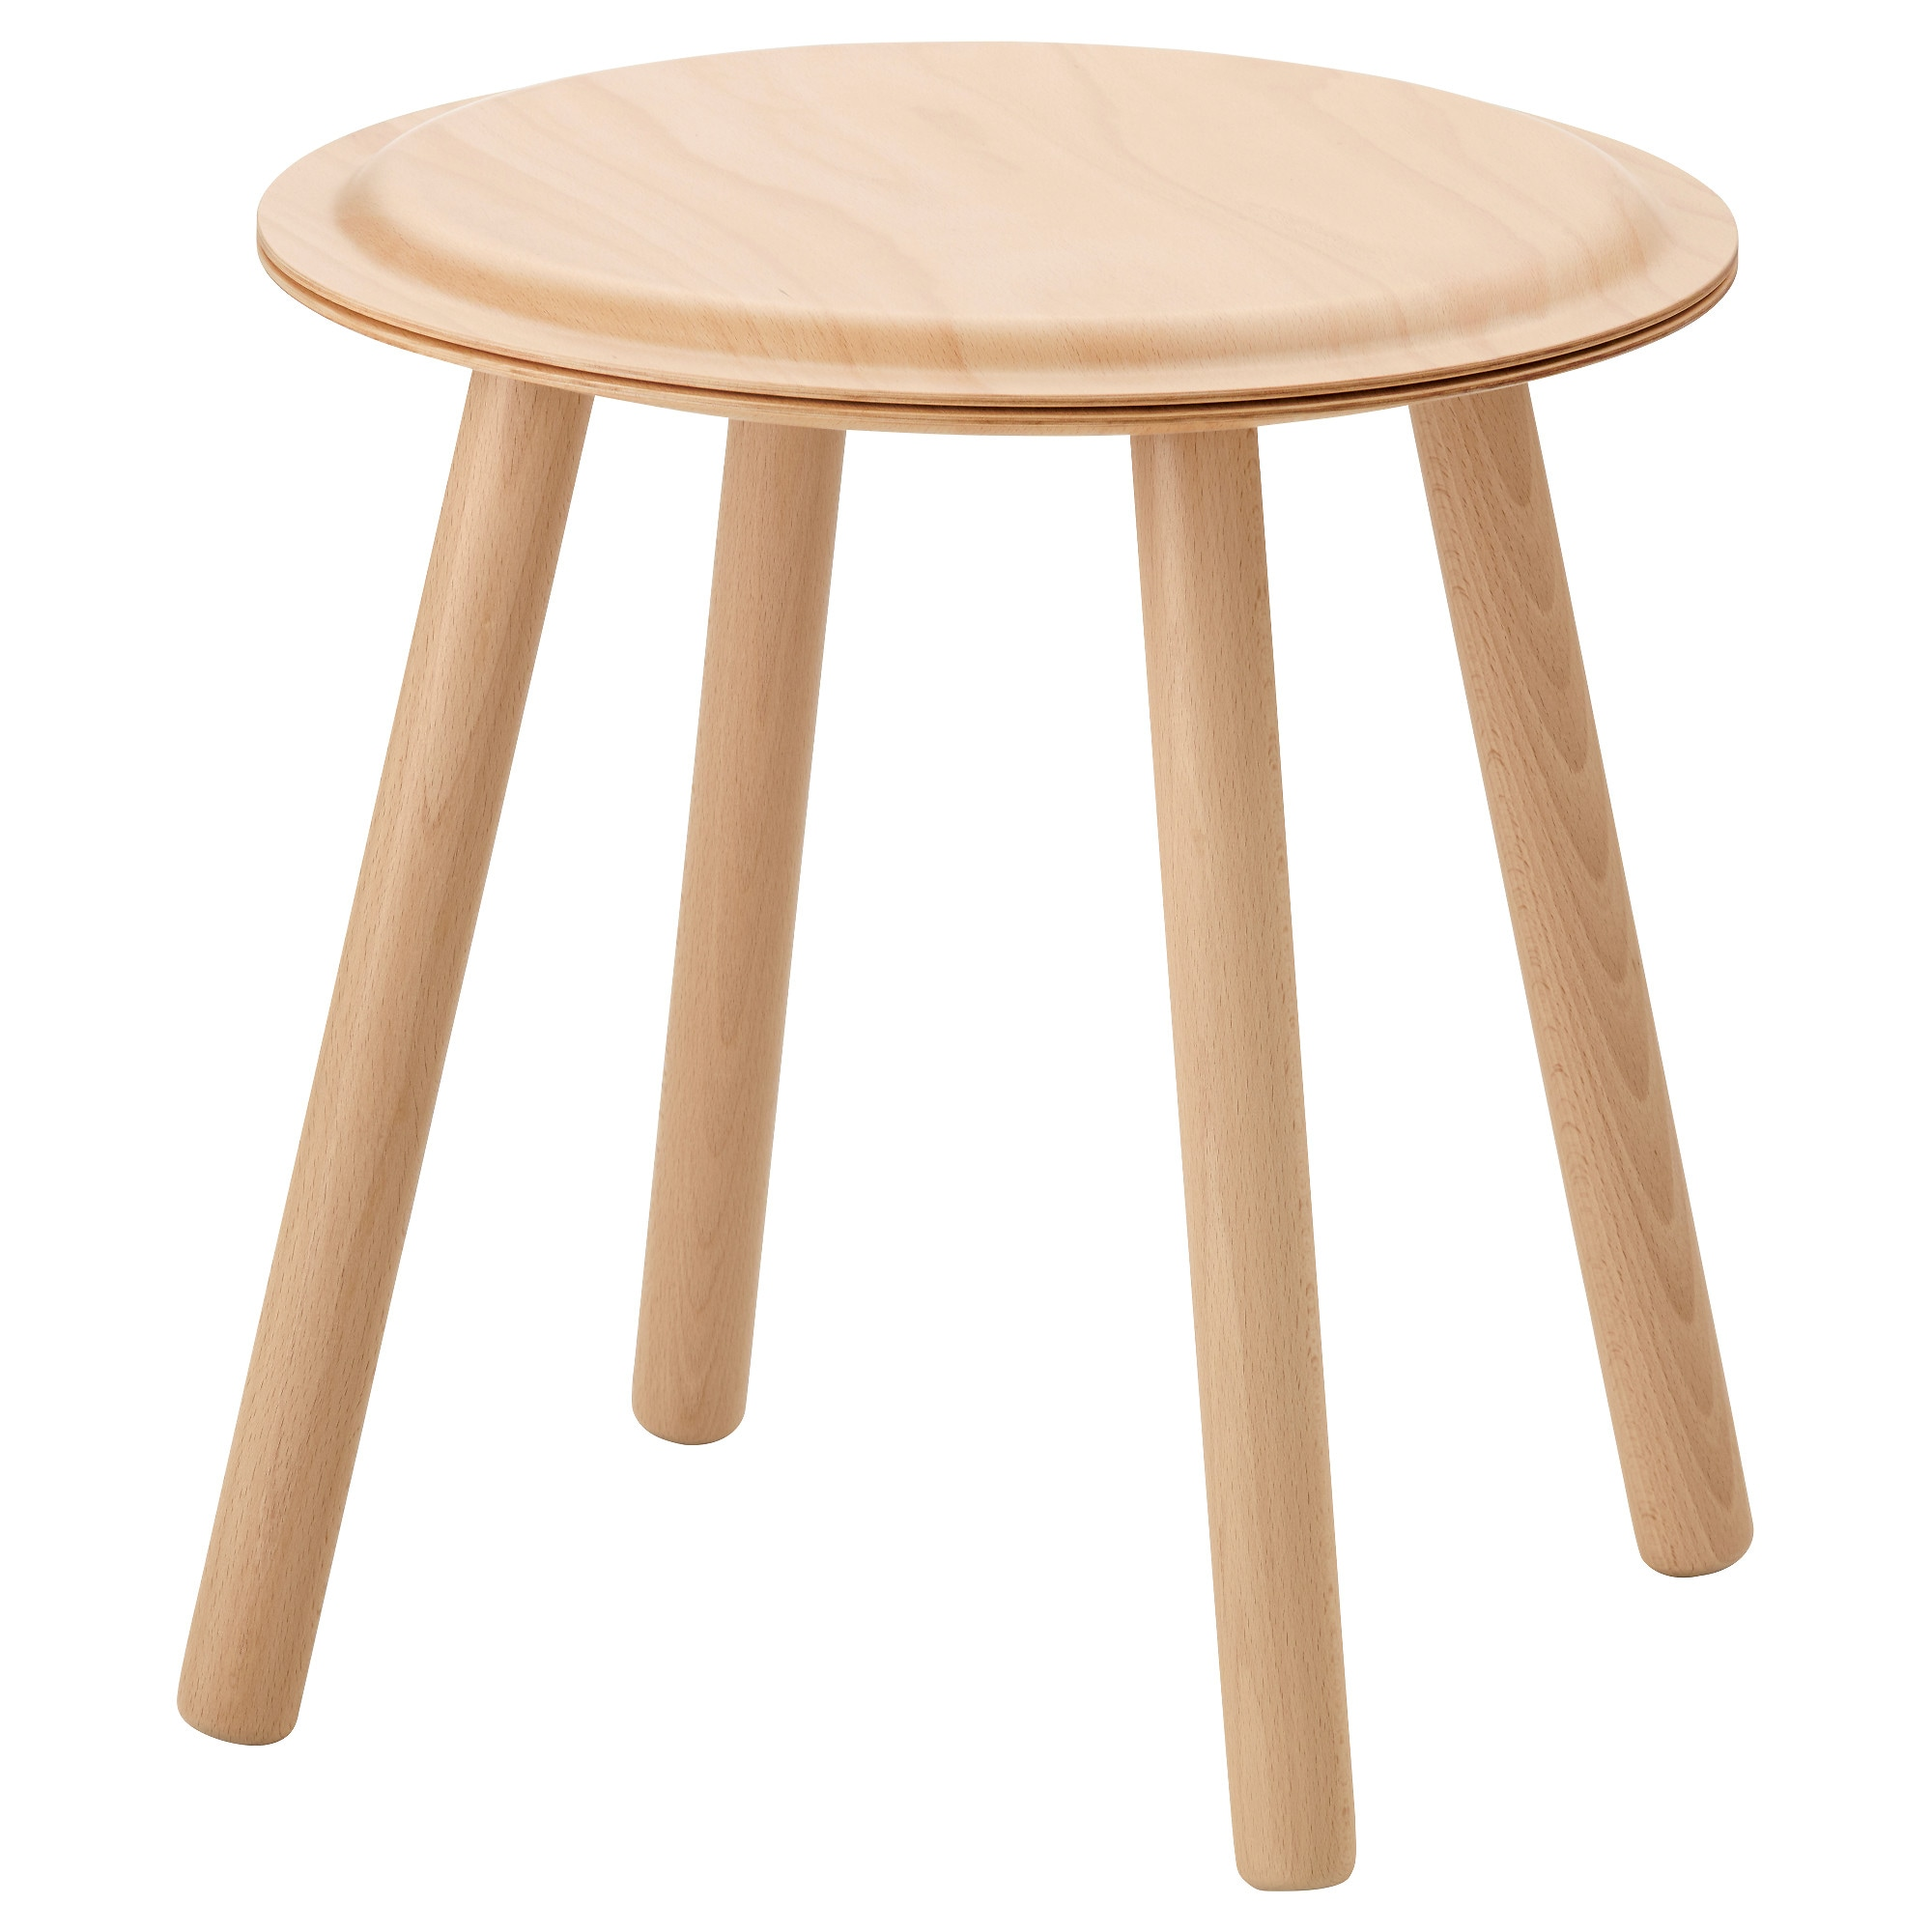 IKEA PS 2017 Side Table/stool, Beech Tested For: 220 Lb Height: